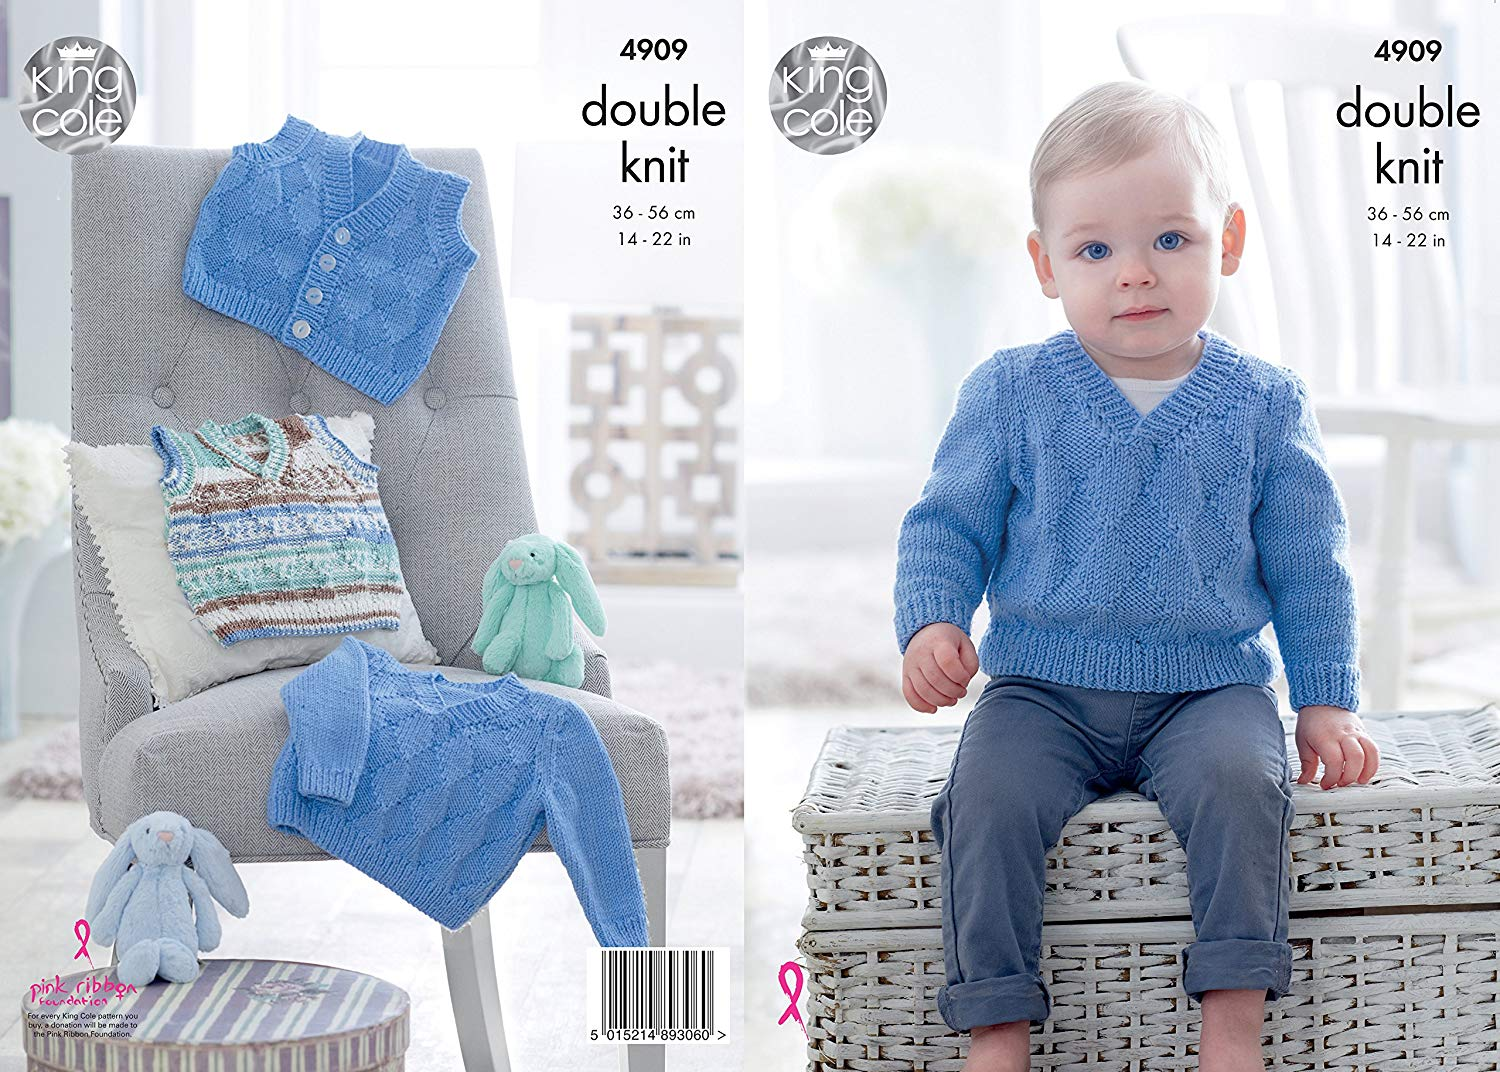 42008bc634542c Get Quotations · King Cole Baby Double Knitting Pattern V Neck Slipover  Sweater   Waistcoats (4909)